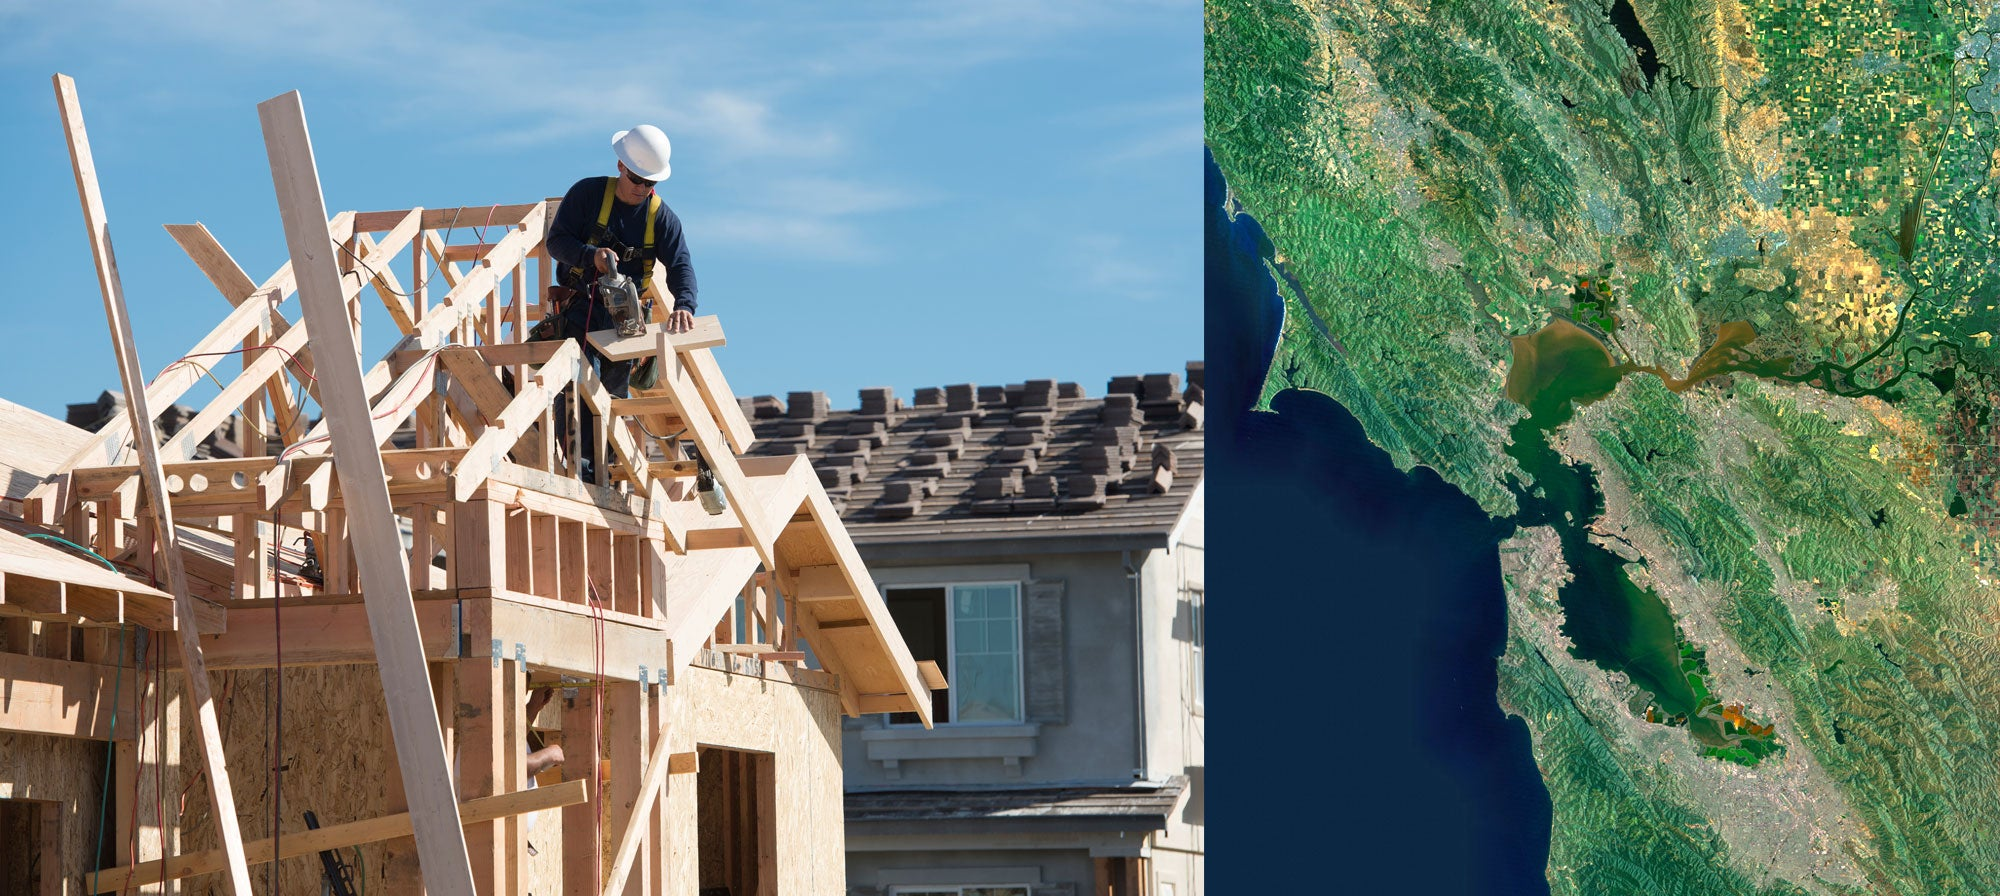 Regional Agencies, Local Governments Take New Steps to Solve Bay Area Housing Problems